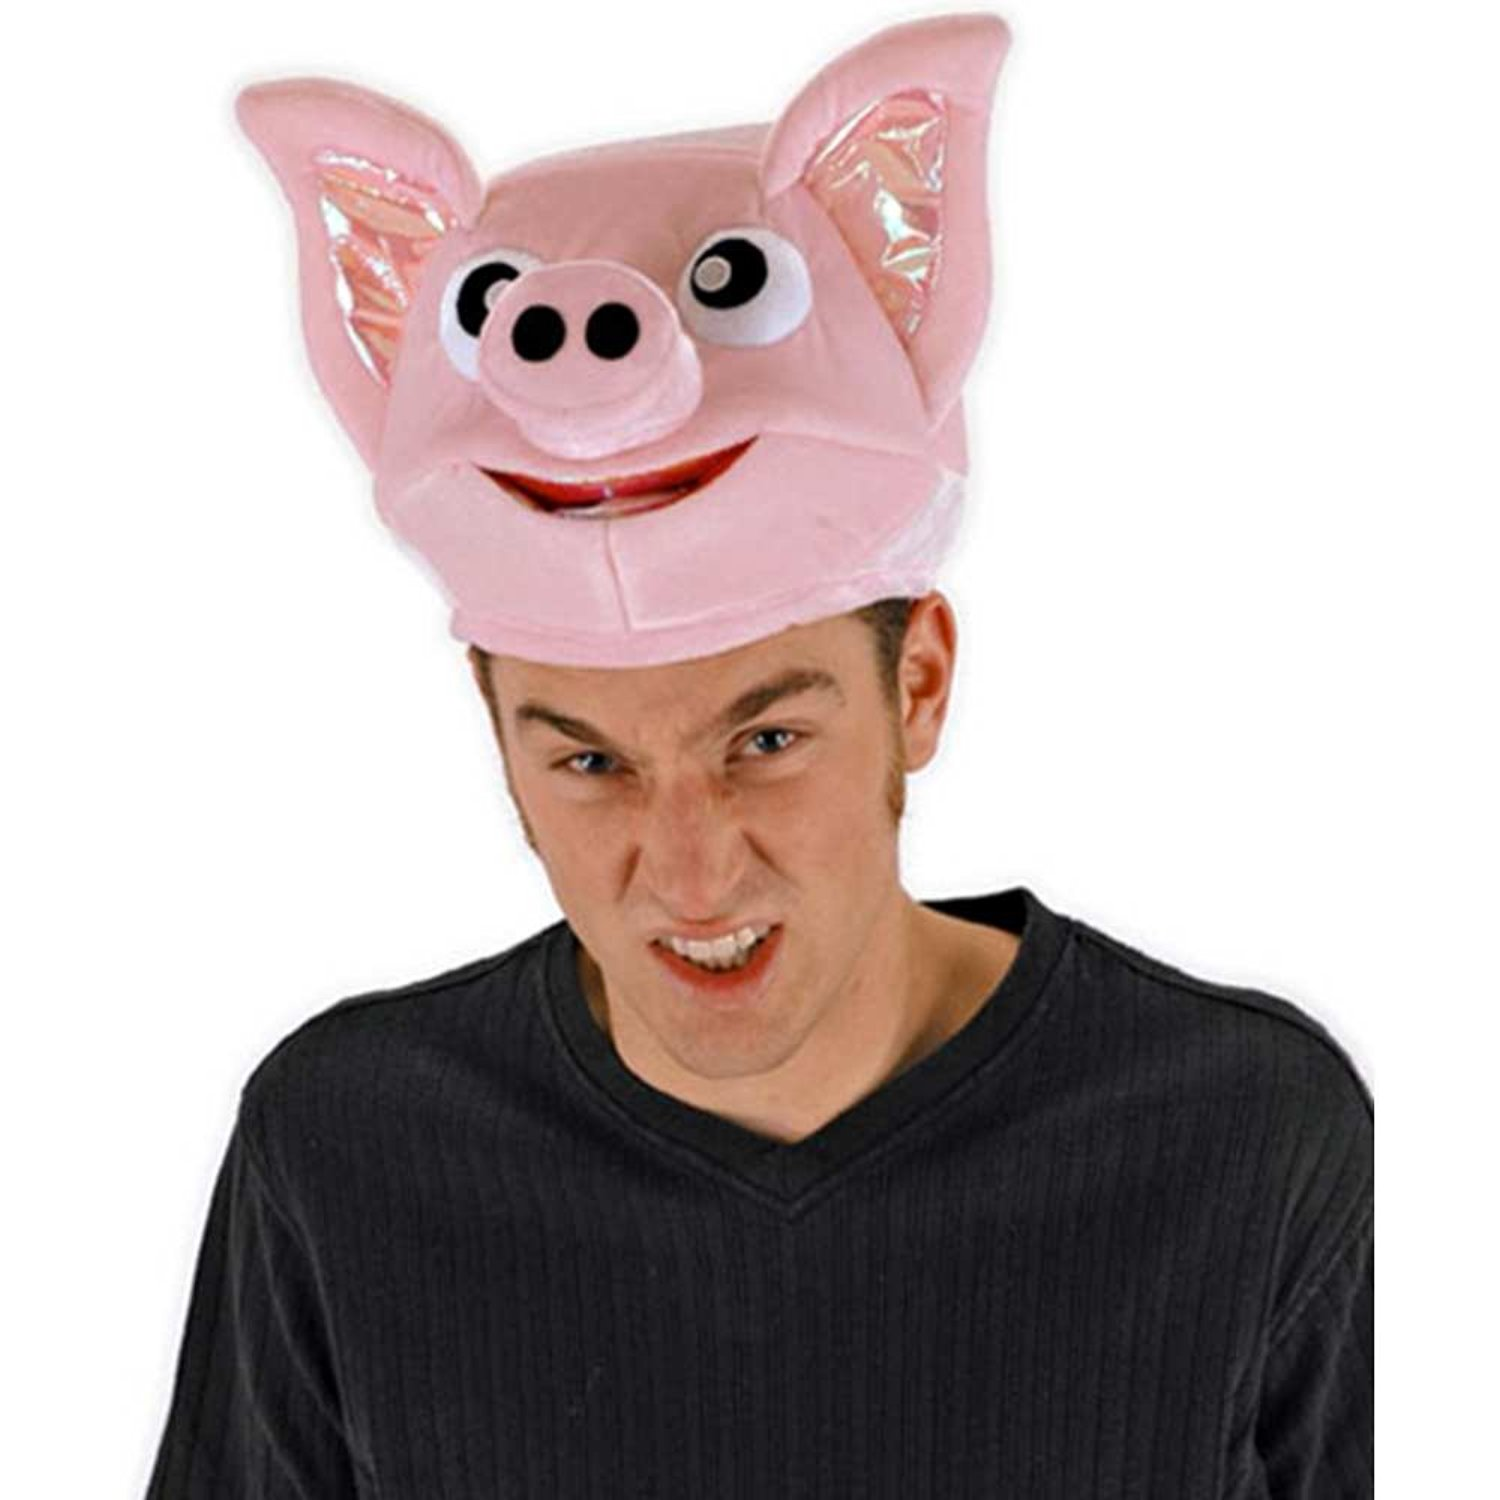 Factory Outlet 71f67 F8221 Funny Pig Butcher Chart Diagram Trucker Better D2a19 A9599 Get Quotations The Oinker Hat By Elope